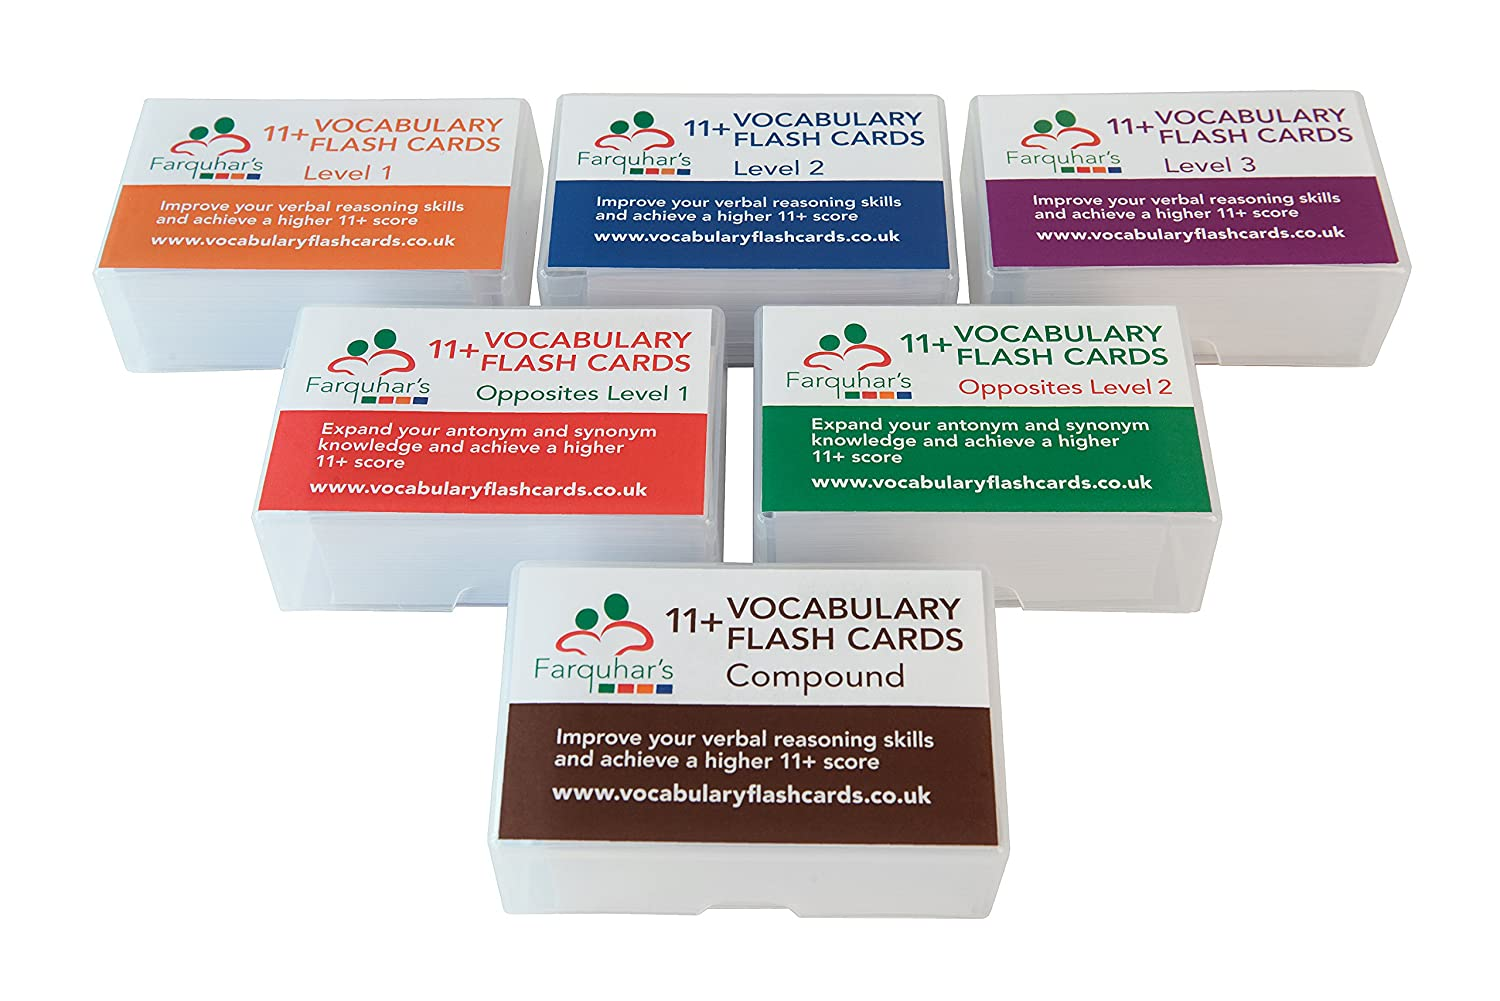 11+ Vocabulary Flash Cards - Set of 6